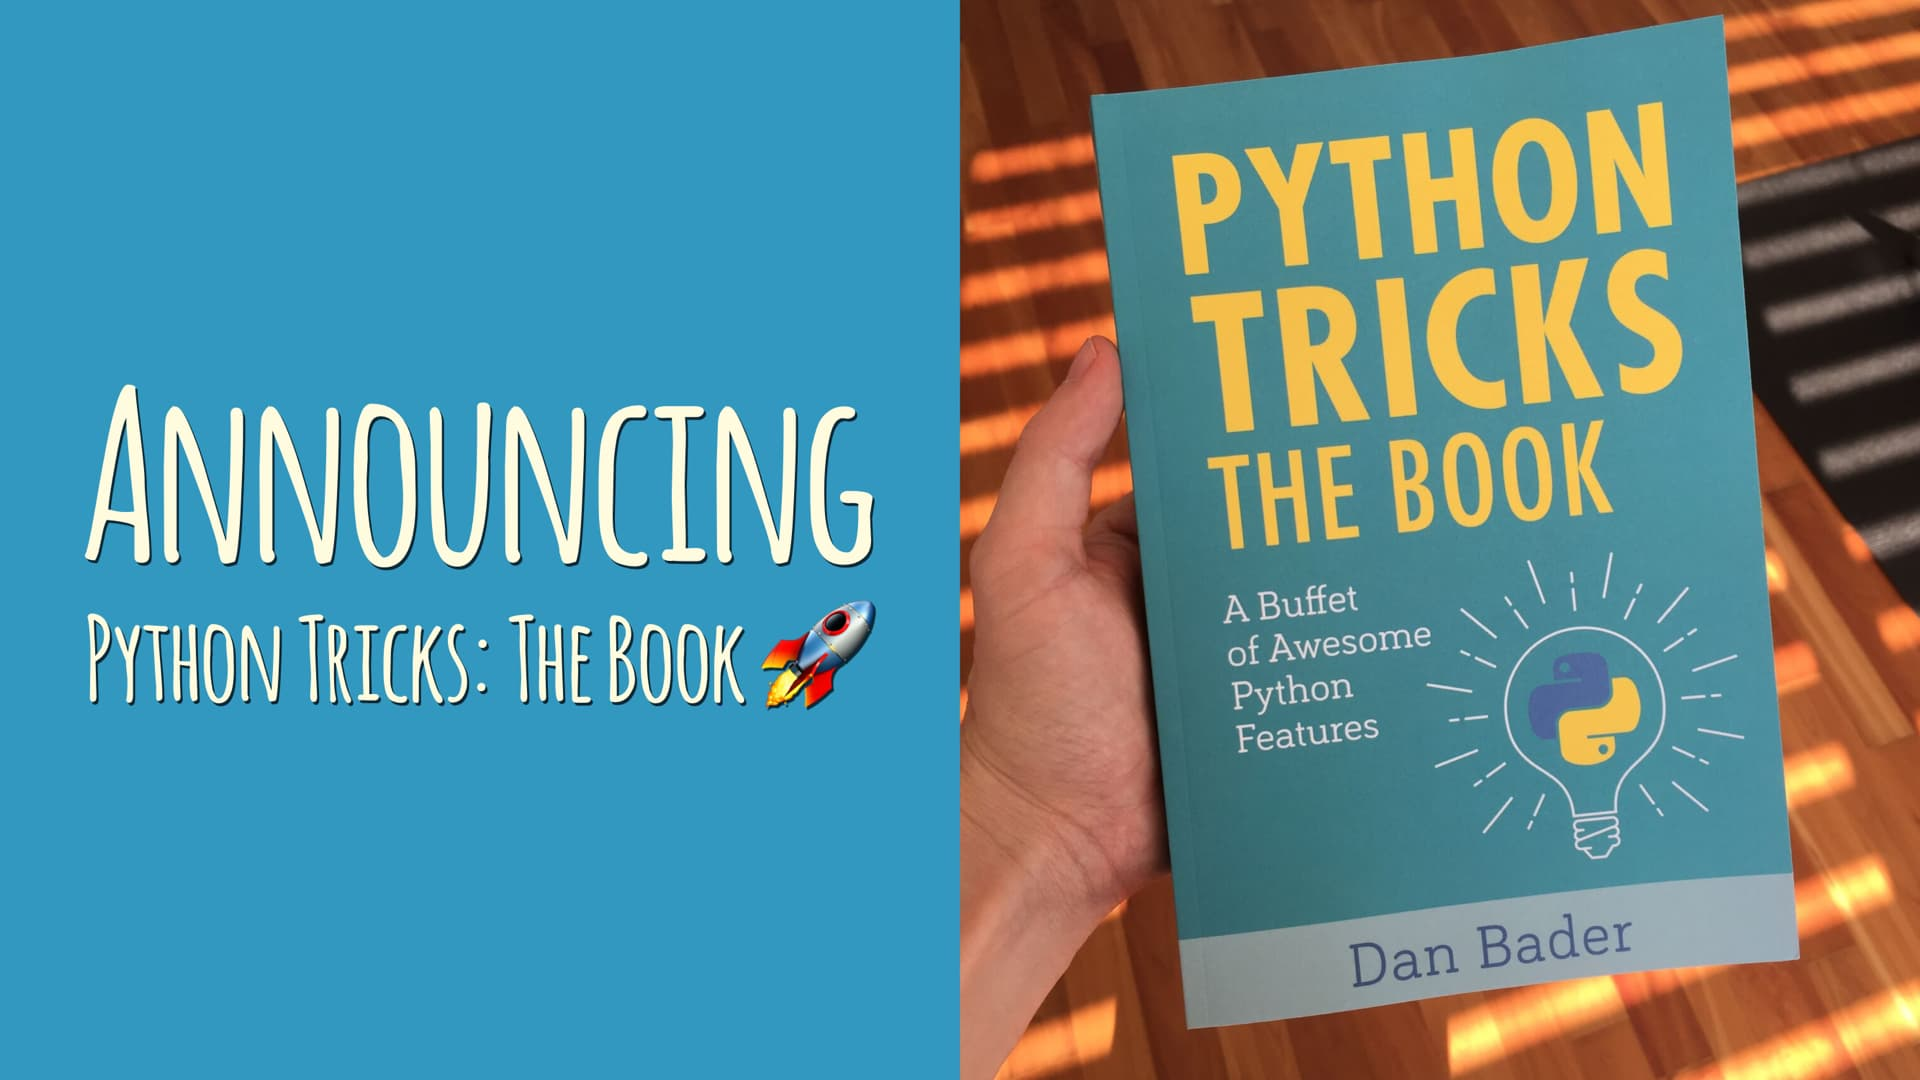 Announcing Python Tricks: The Book!